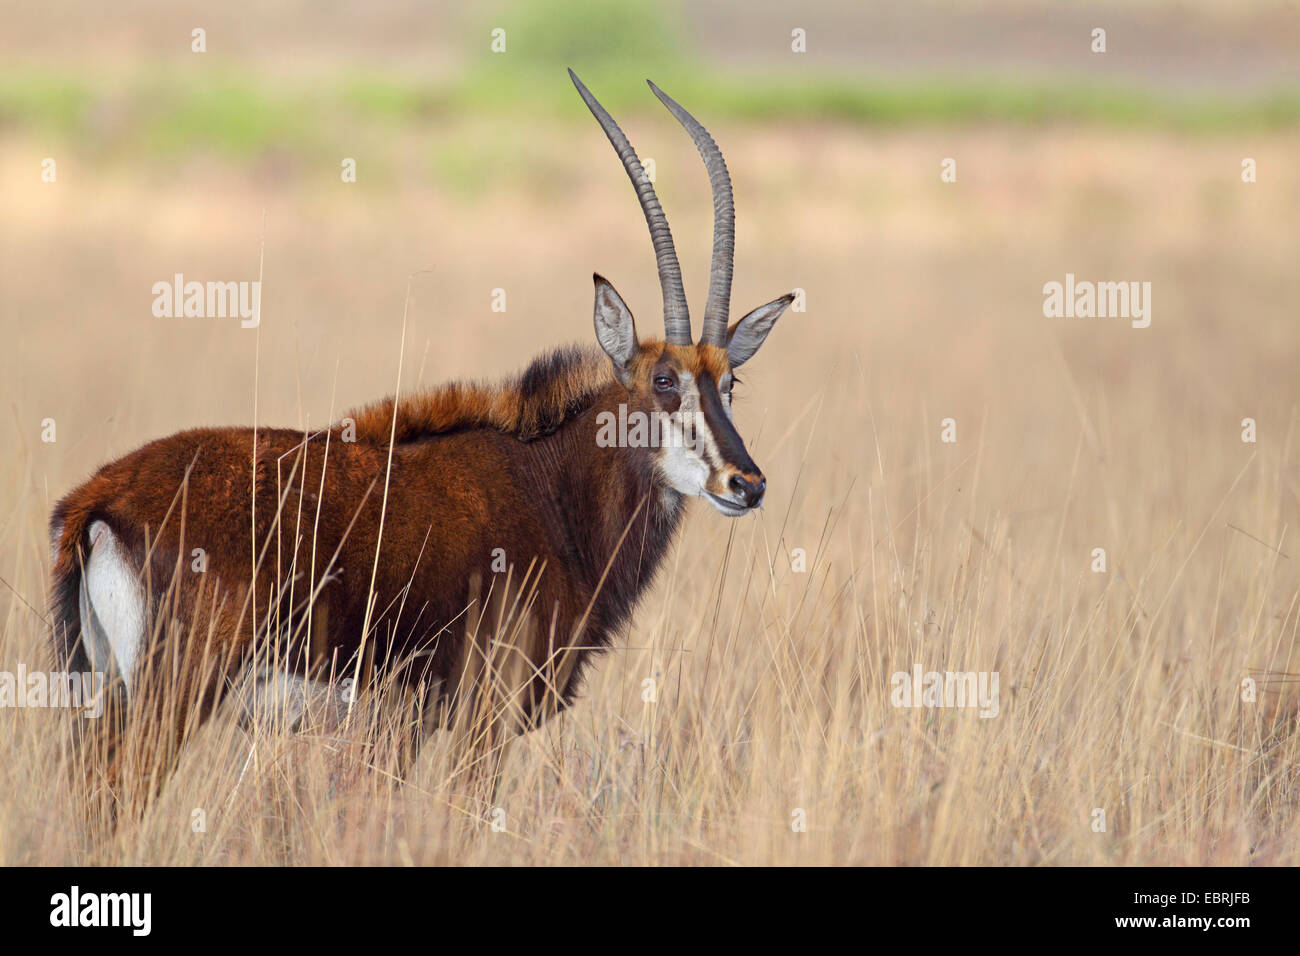 South African Sable Antelope (Hippotragus niger niger), female in savannah, South Africa, Kgaswane Mountain Reserve Stock Photo